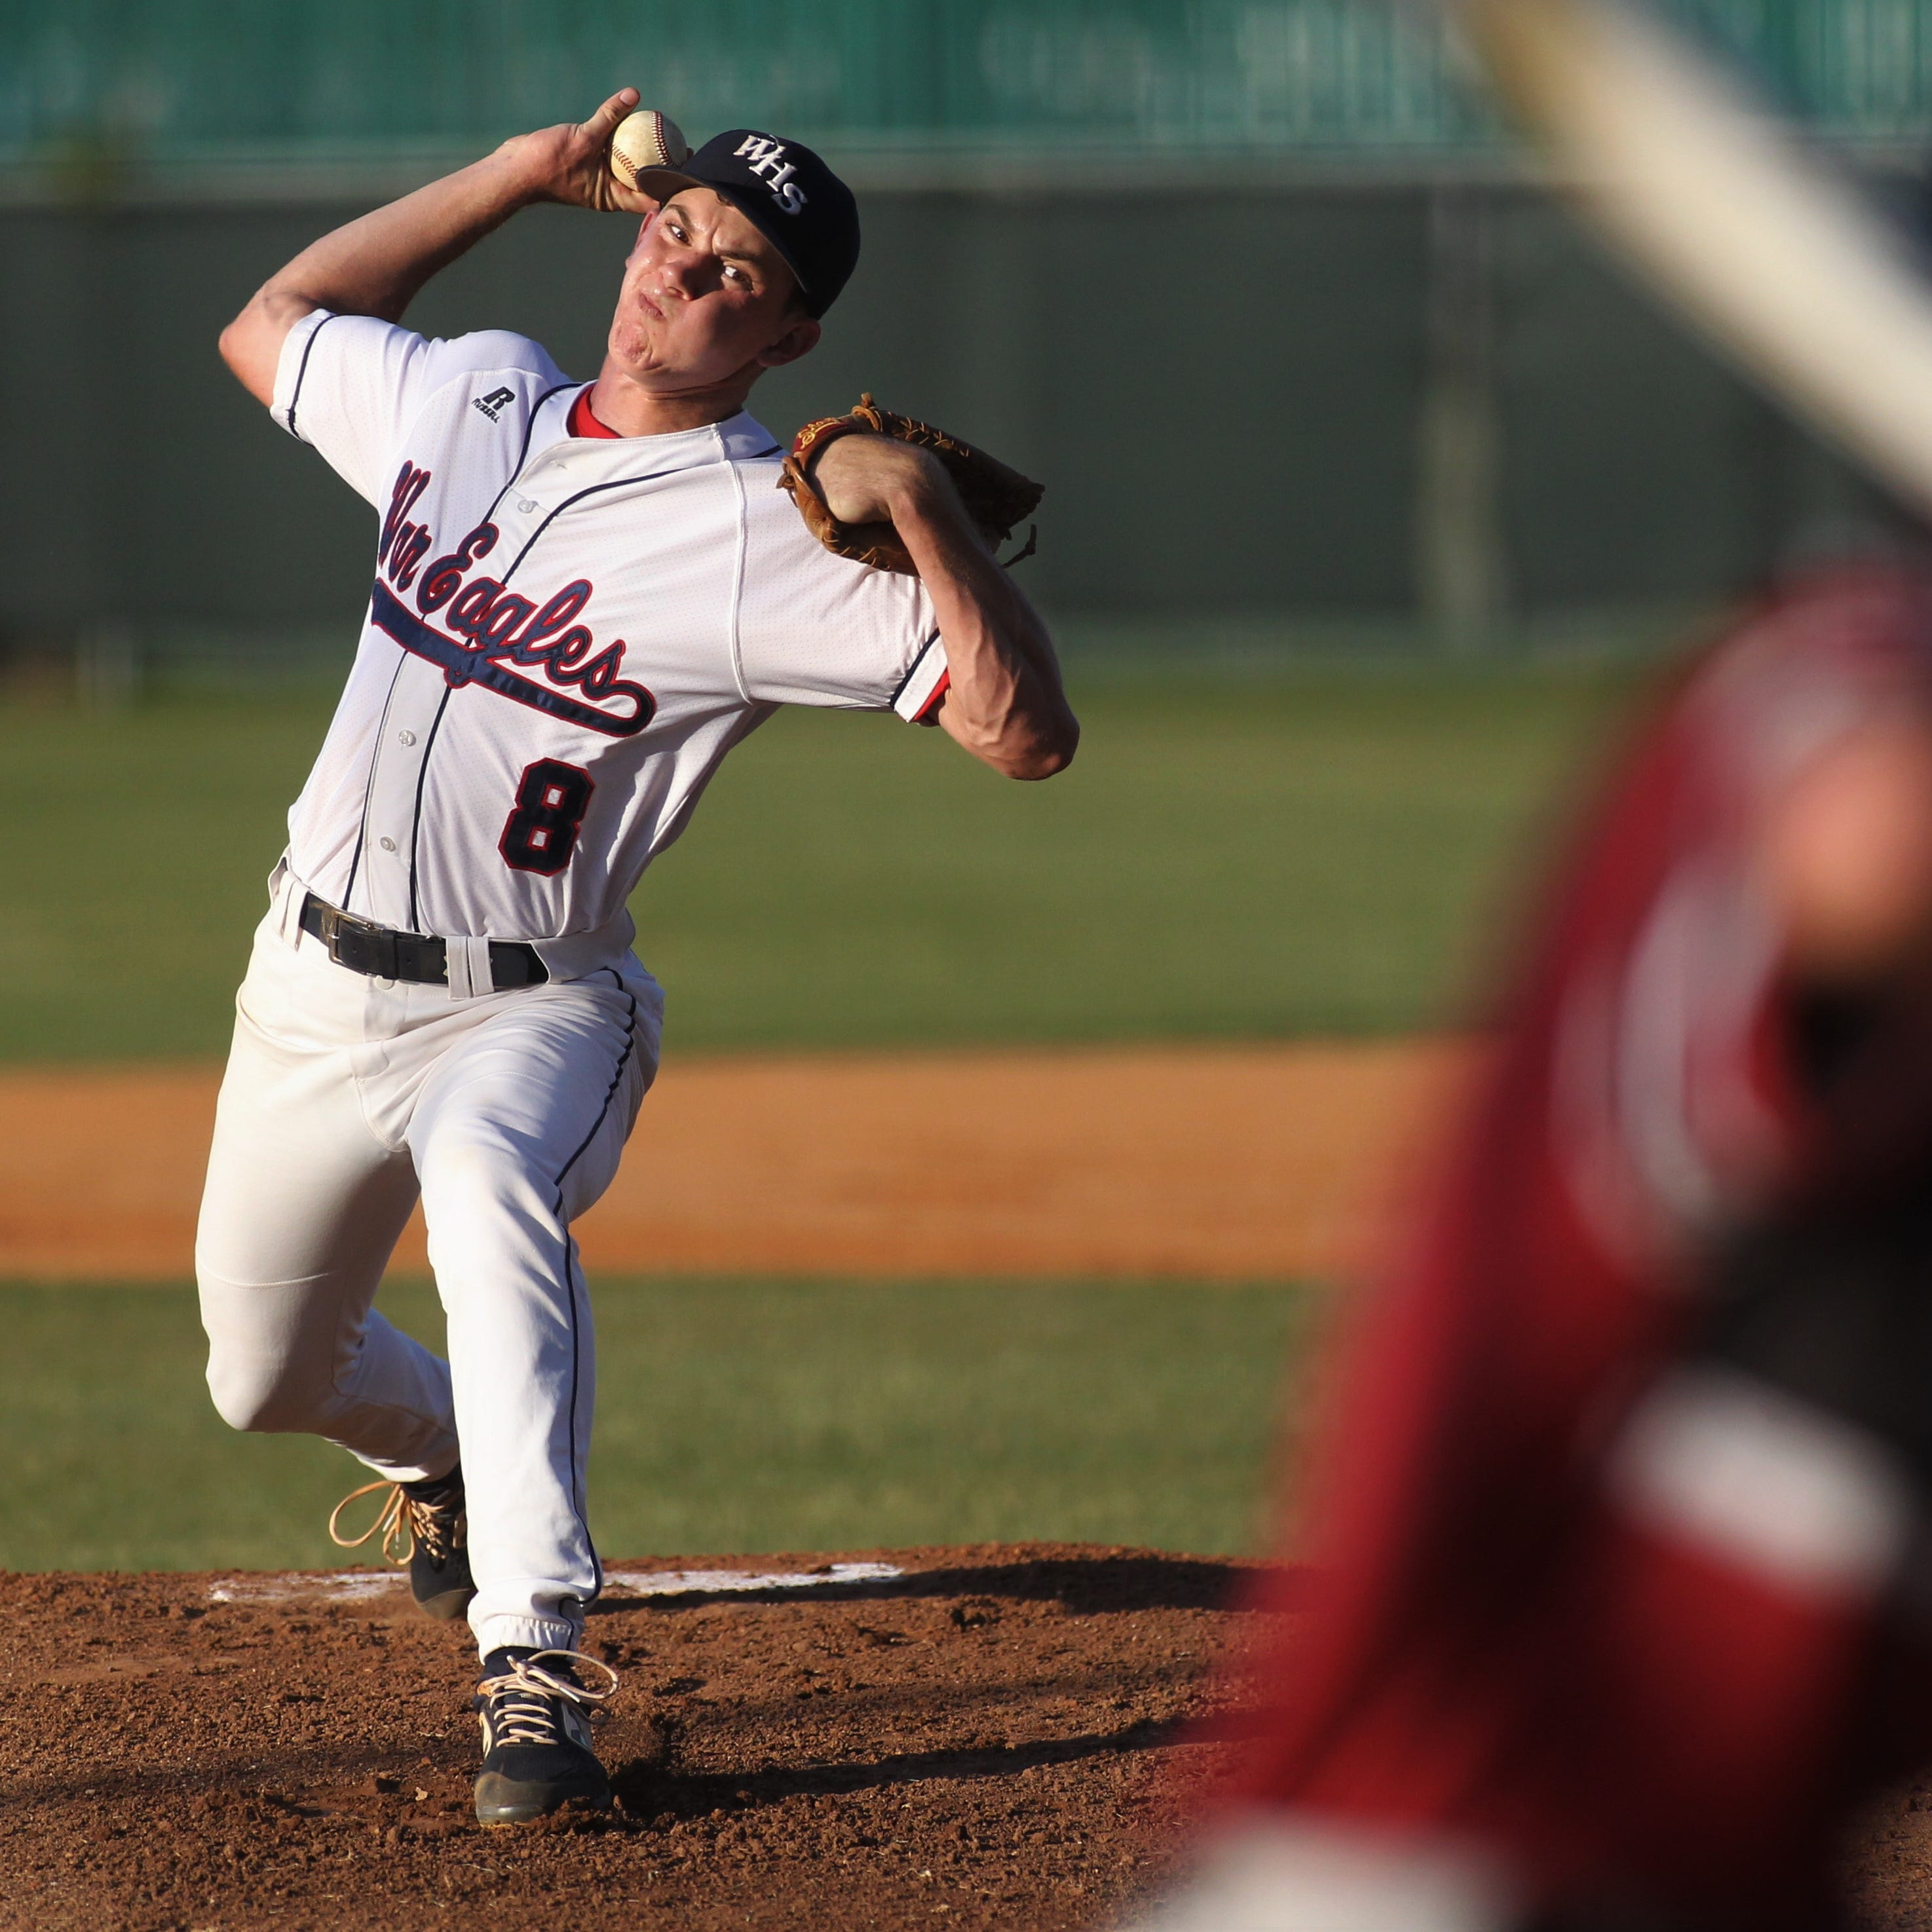 Wakulla, Franklin County baseball fight to get out of 'discouraging' districts